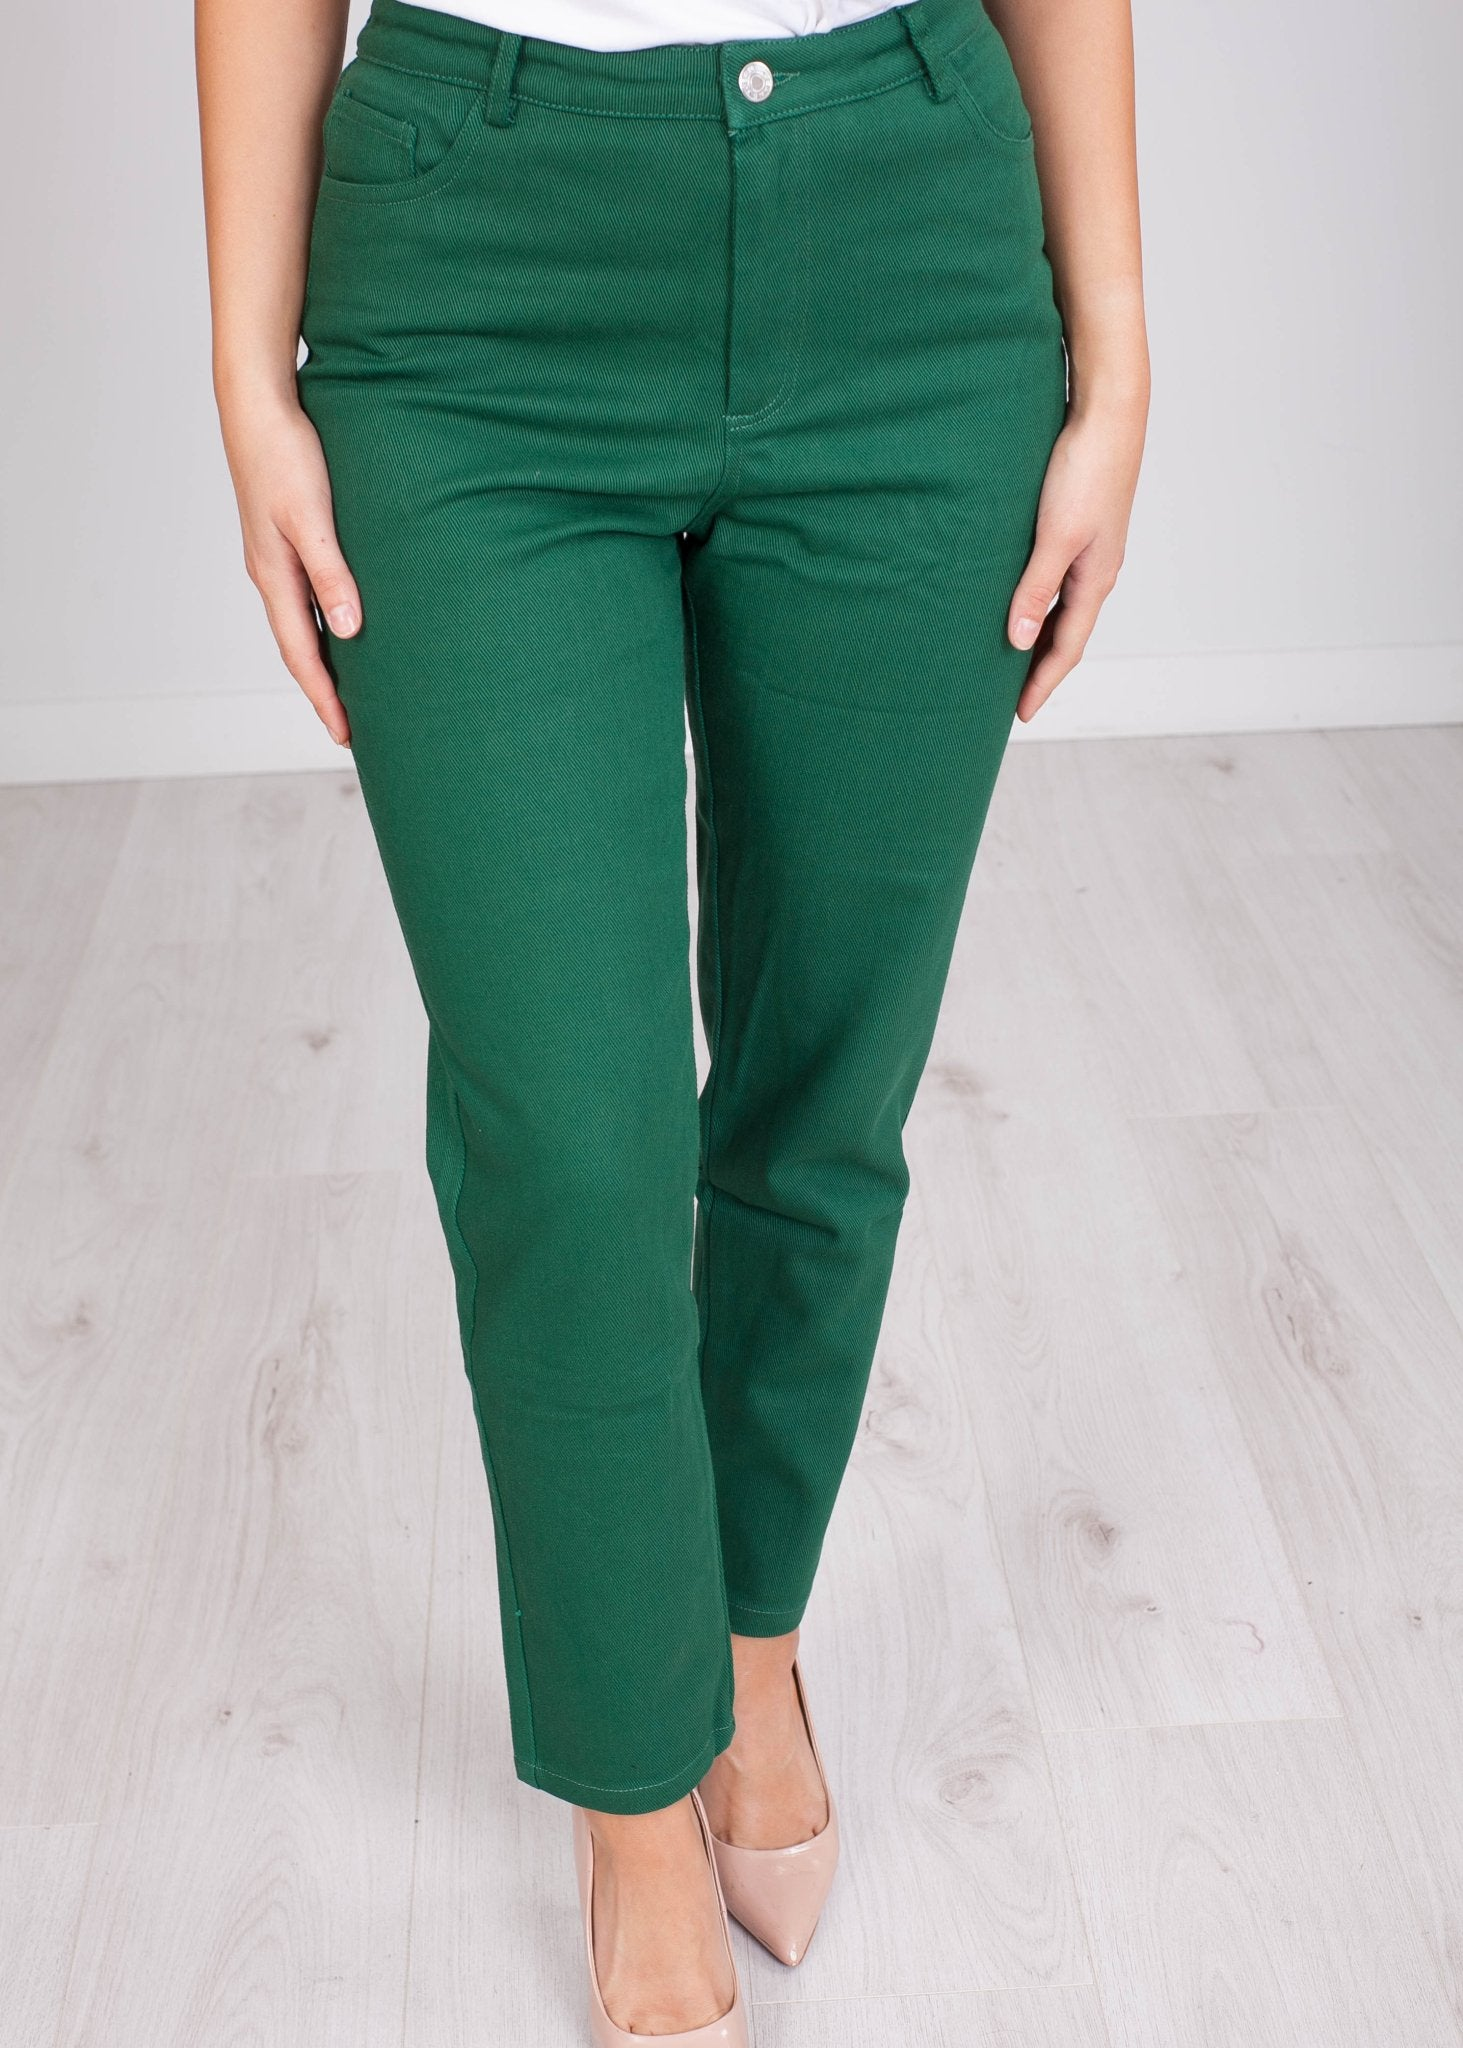 Fifi Green Ribbed Mom Jeans - The Walk in Wardrobe